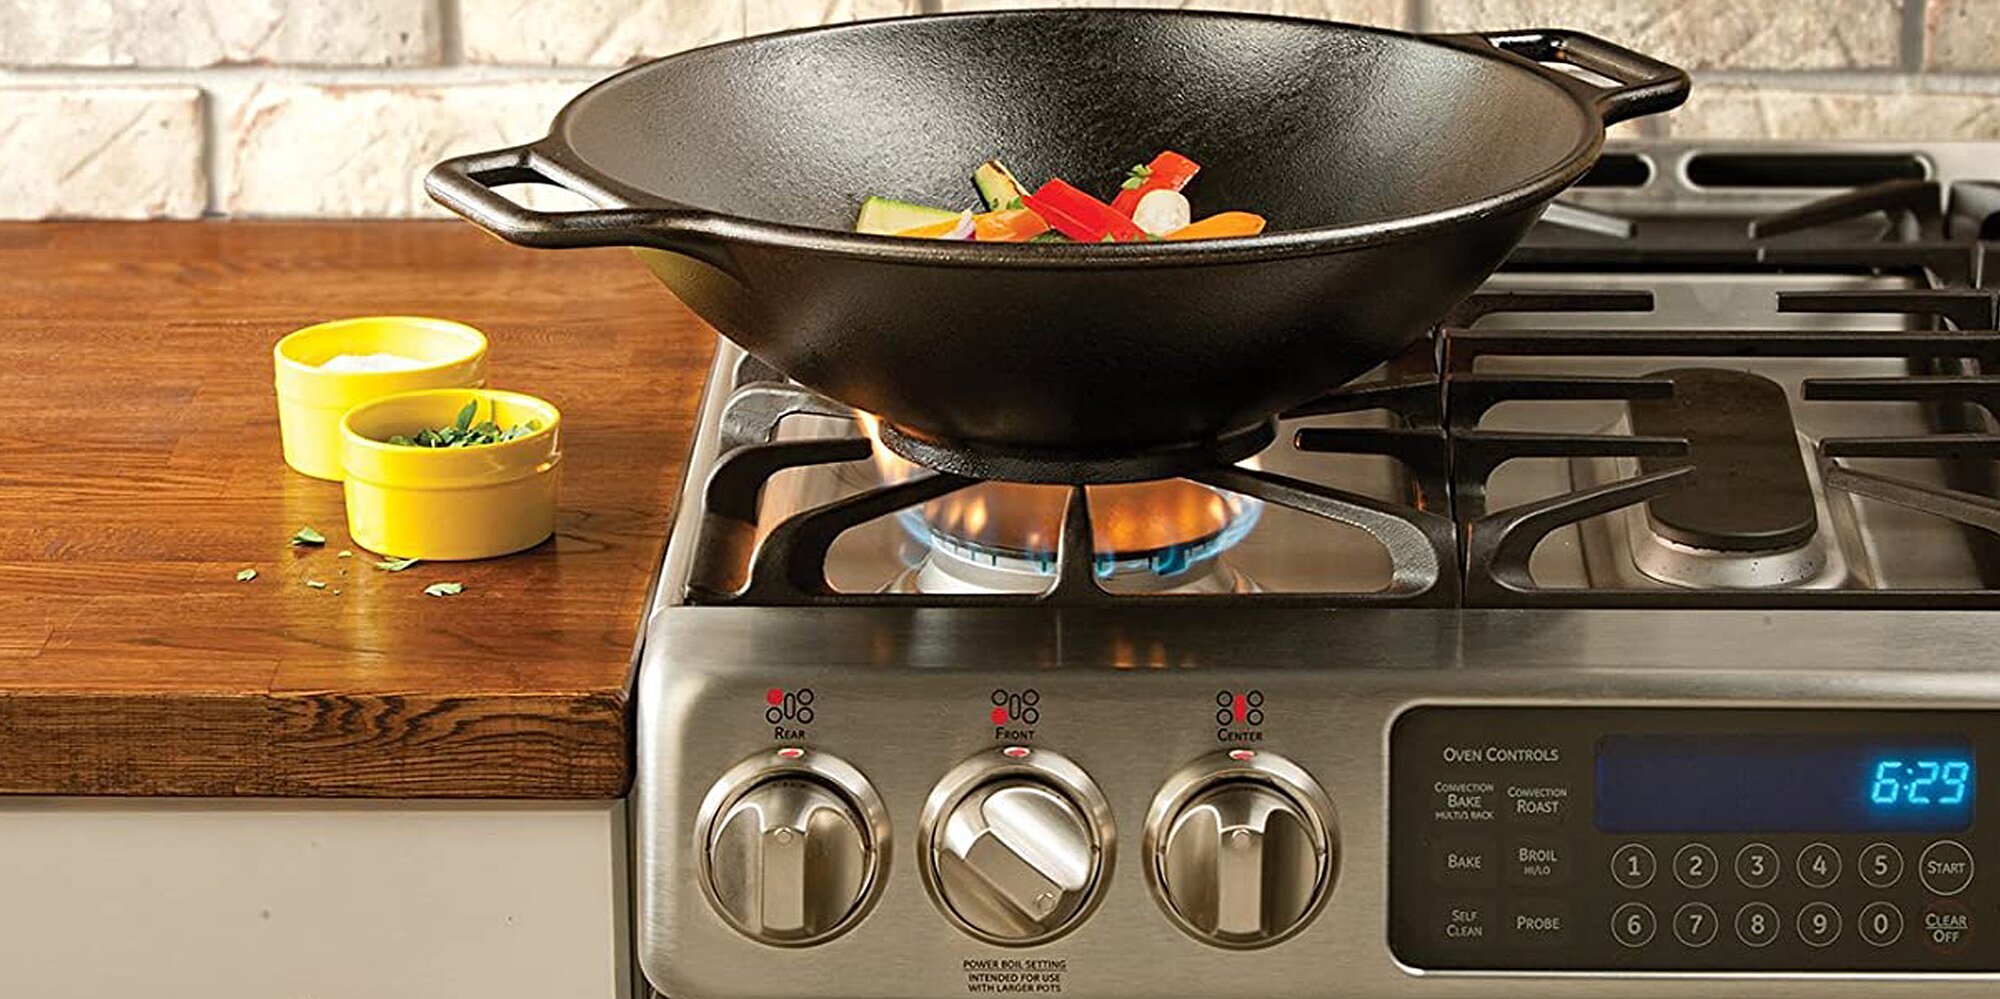 Amazon Shoppers Say This Cast-Iron Lodge Wok Is the 'World's Best'-and It's 41% Off